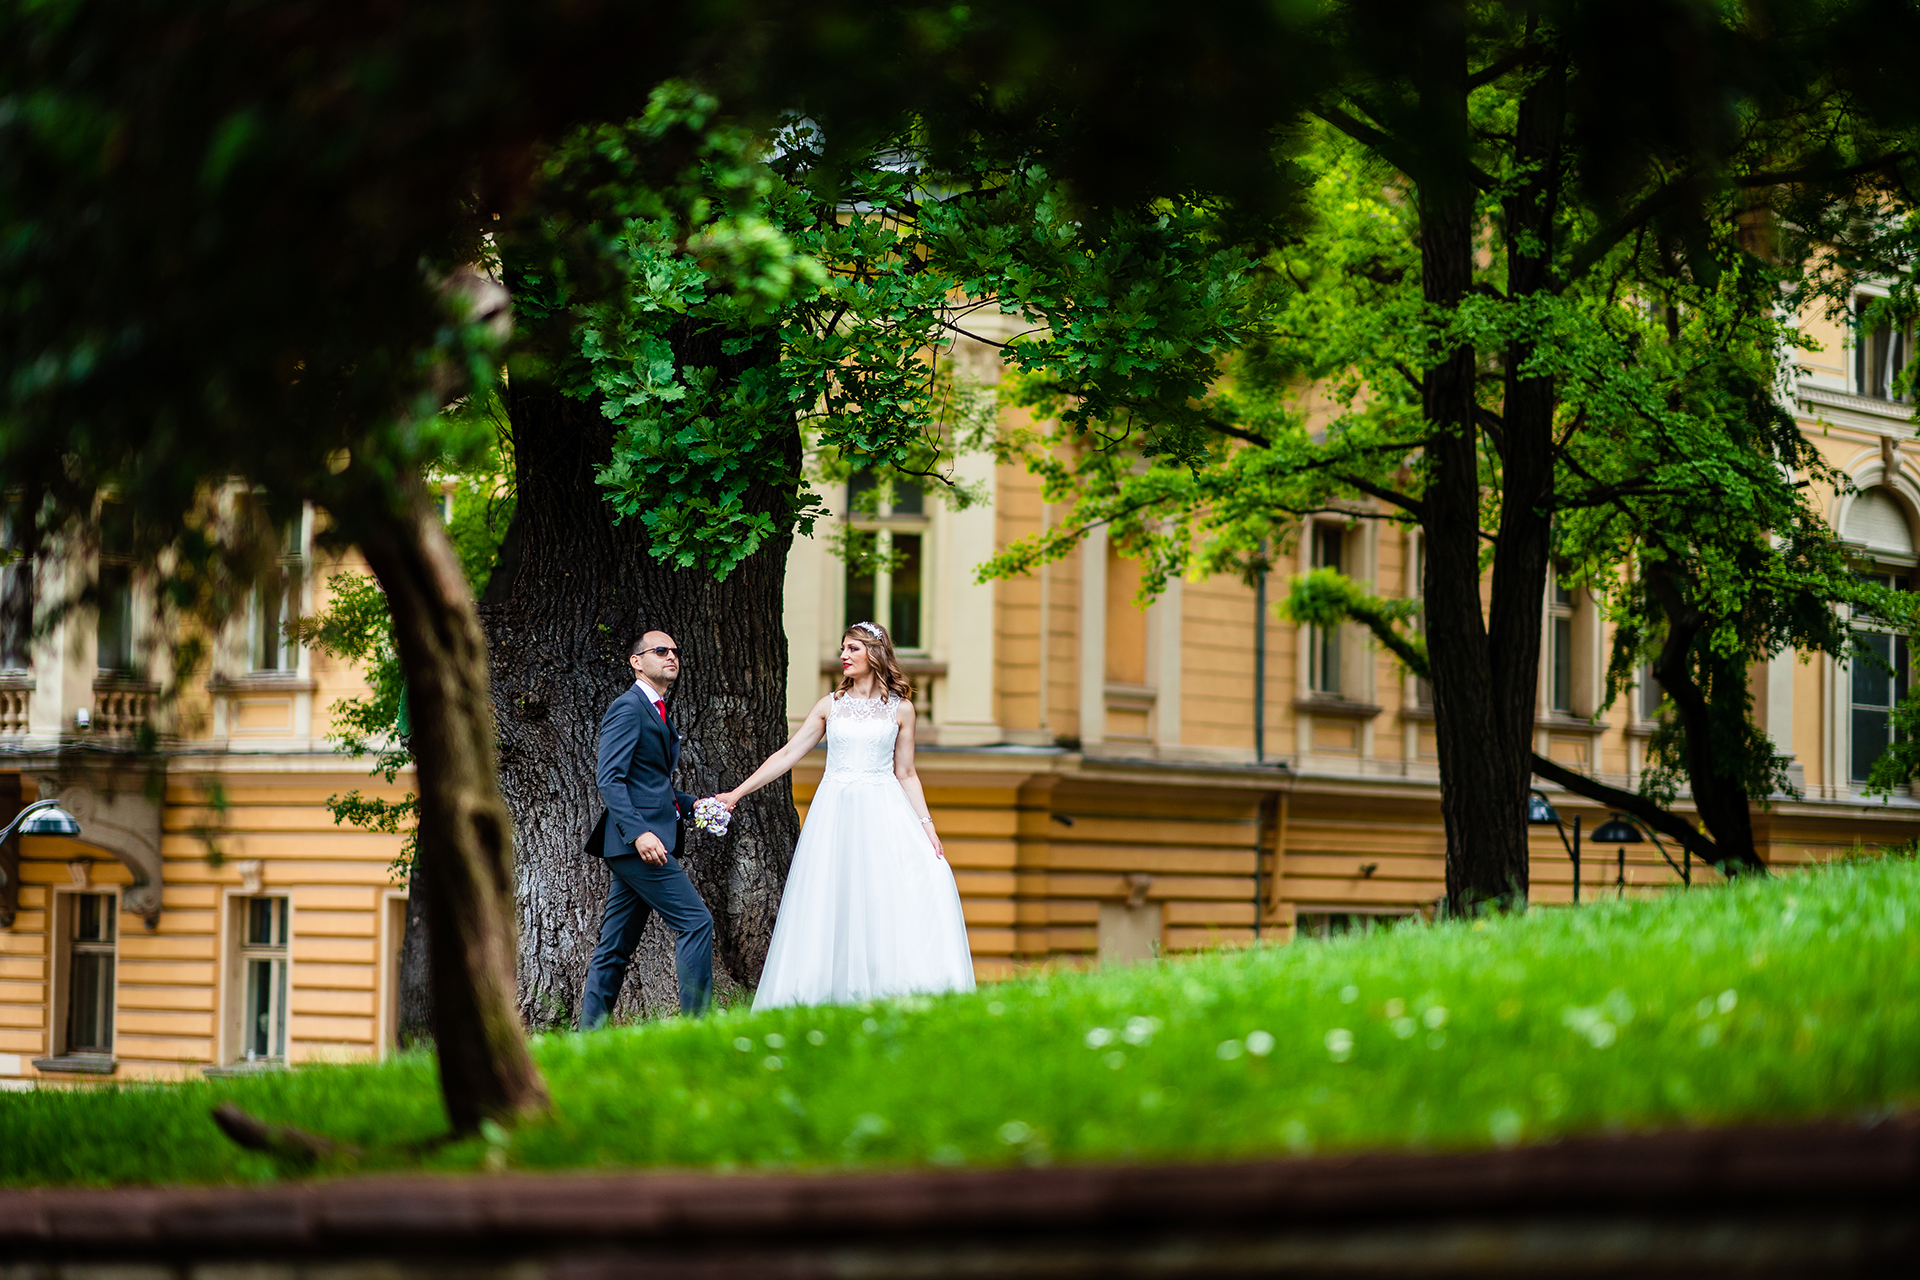 Sofia Elopement Couple Portrait Photography | The bride is holding the hand of her husband while having a relaxing walk